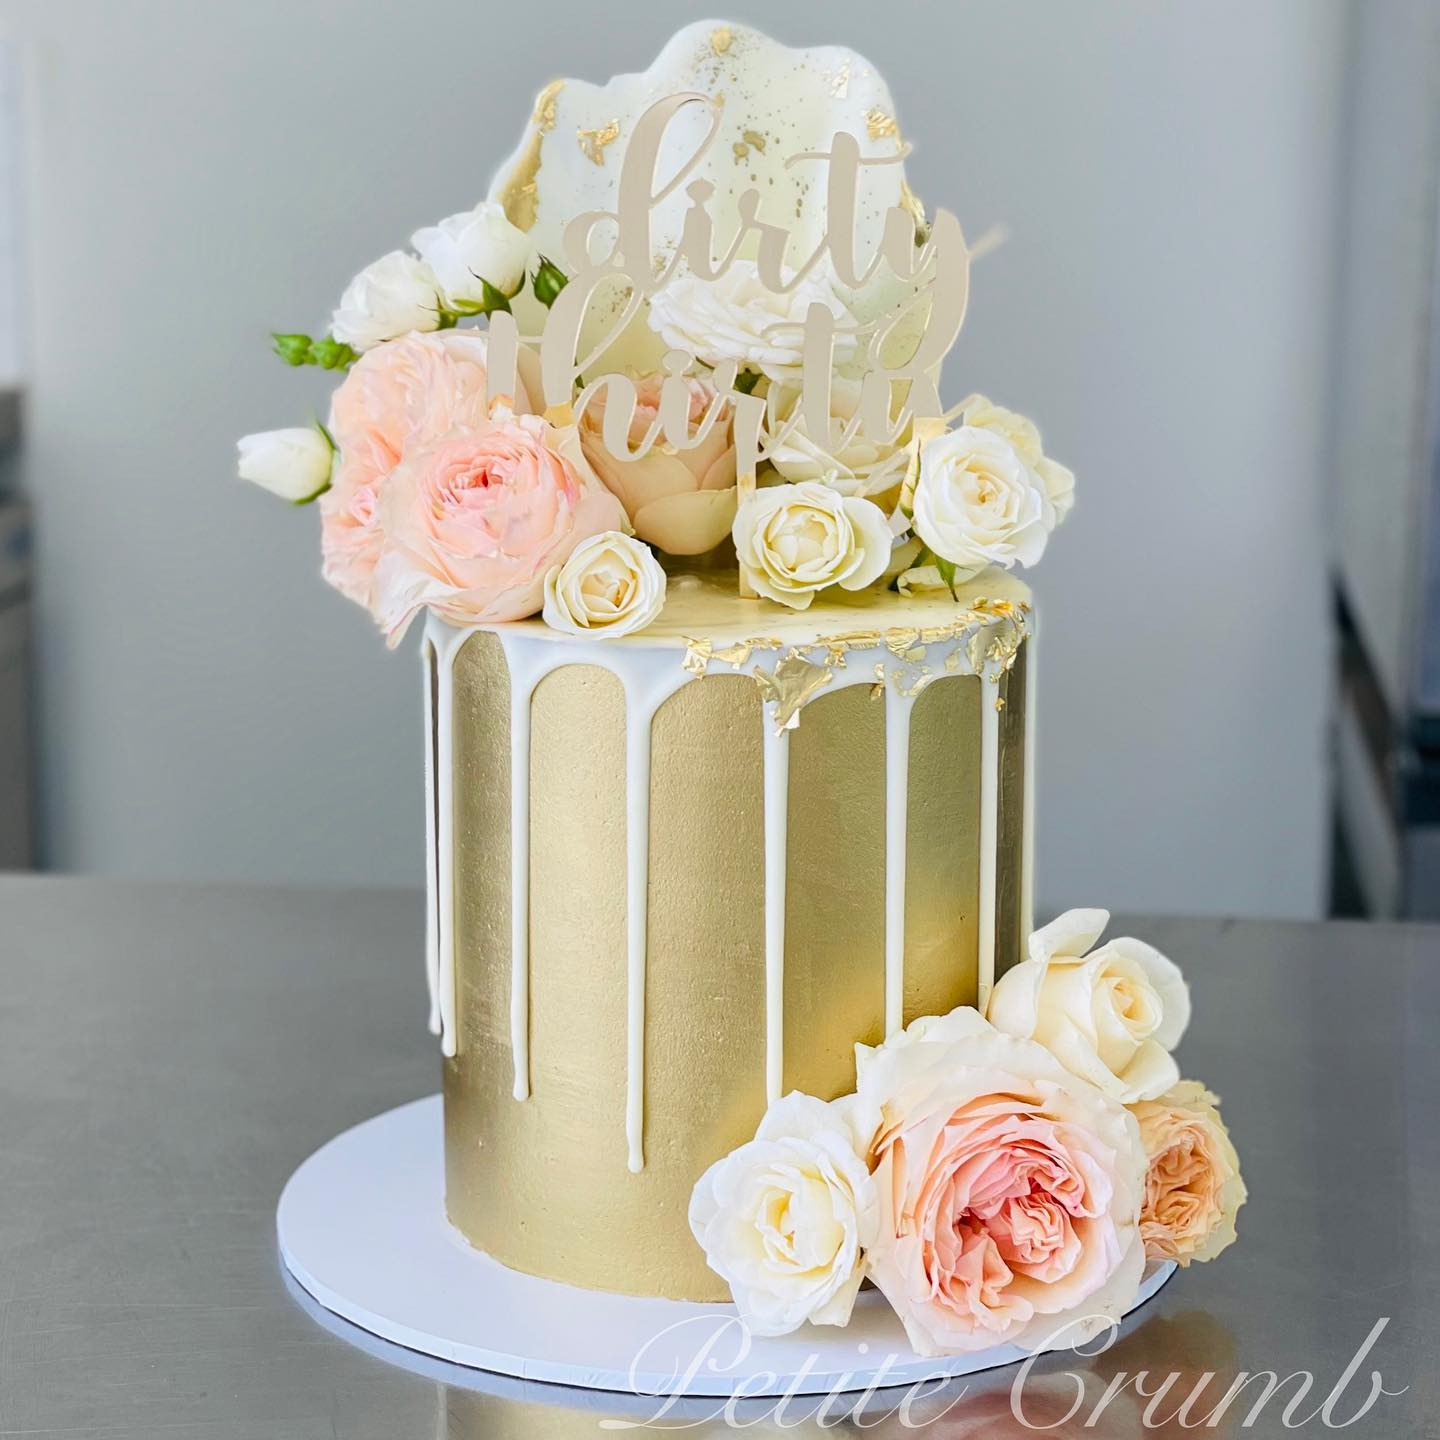 Dirty thirty drip cake